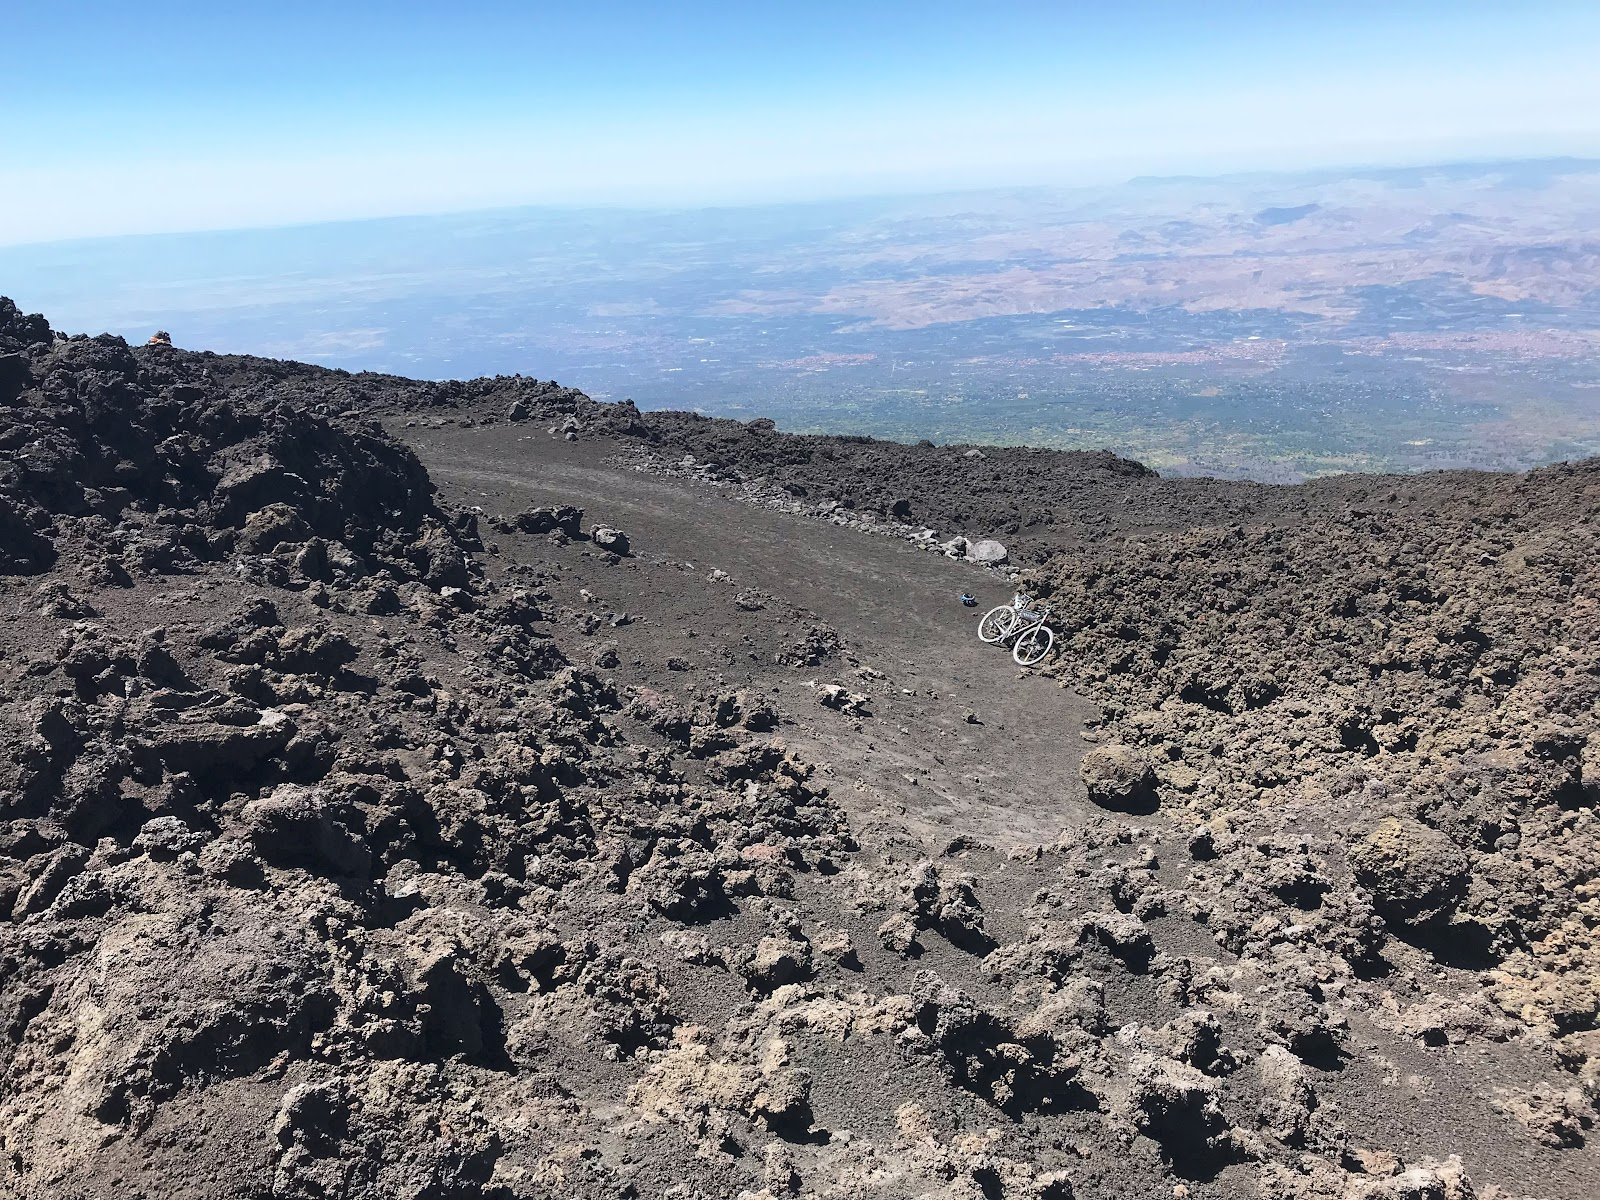 View down at bike from end of road on Mount Etna, Sicily